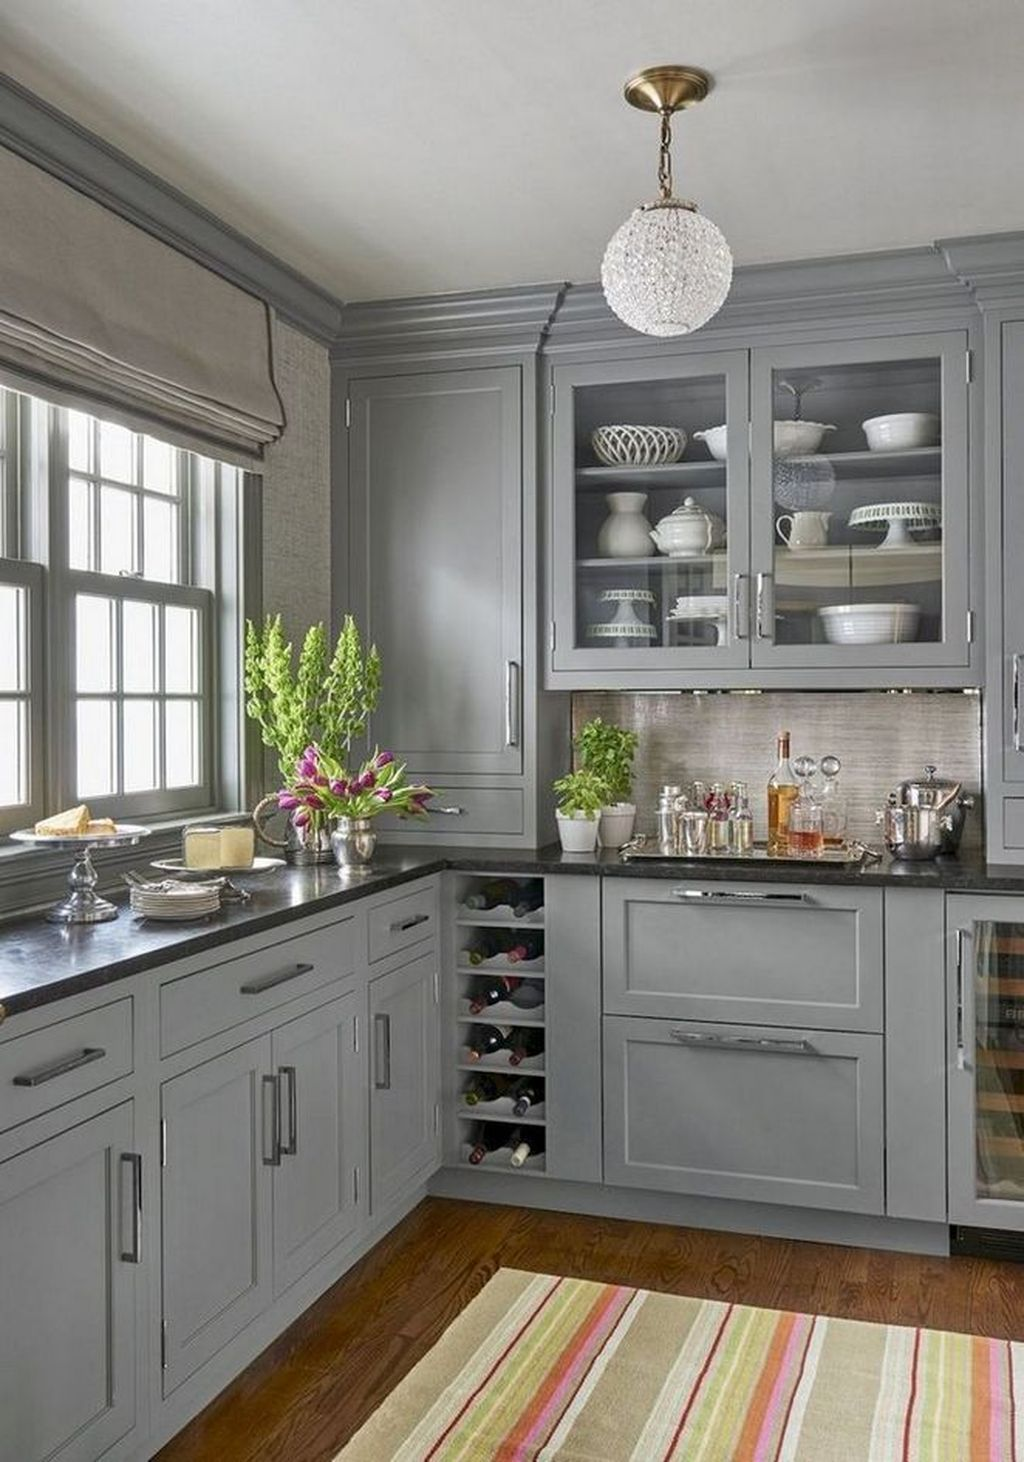 Best 32 Popular Kitchen Cabinets Makeover Ideas On A Budget 400 x 300